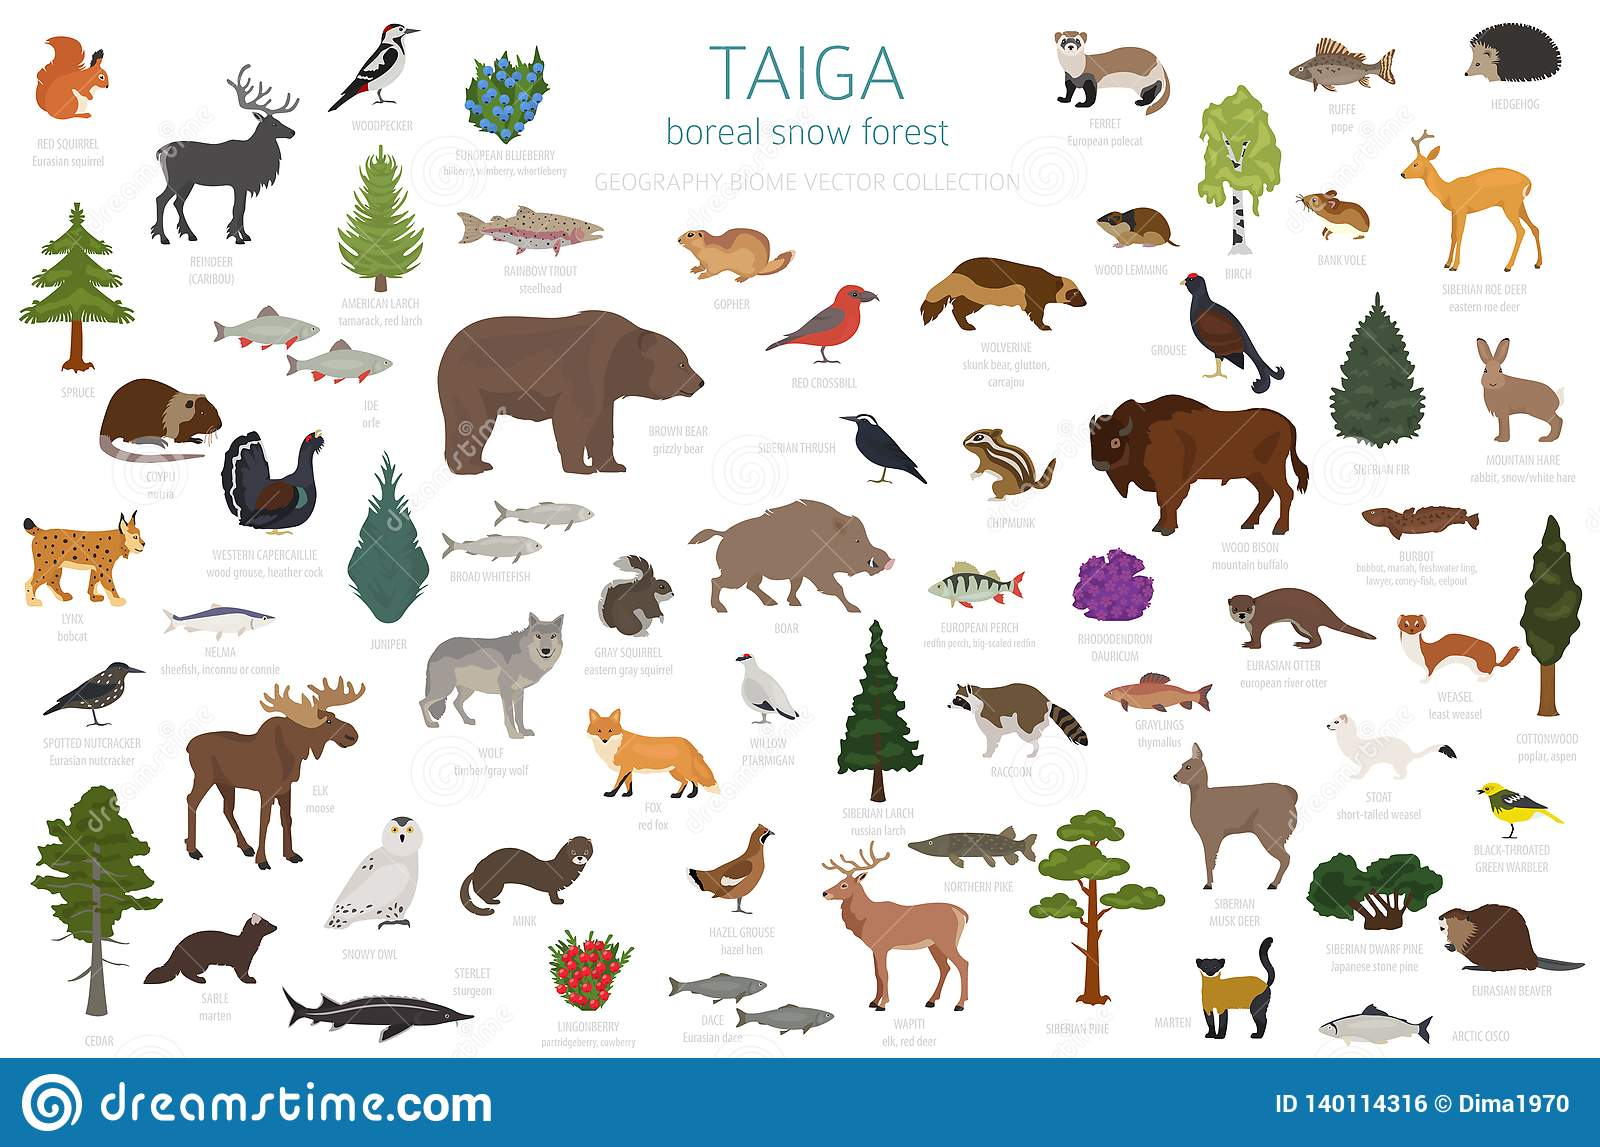 Other animals include voles, beavers, chipmunks, the wood mouse, the hare, and other small furry mammals. Taiga Biome Boreal Snow Forest Terrestrial Ecosystem World Map Animals Birds Fish And Plants Infographic Design Stock Vector Illustration Of Icon Bear 140114316